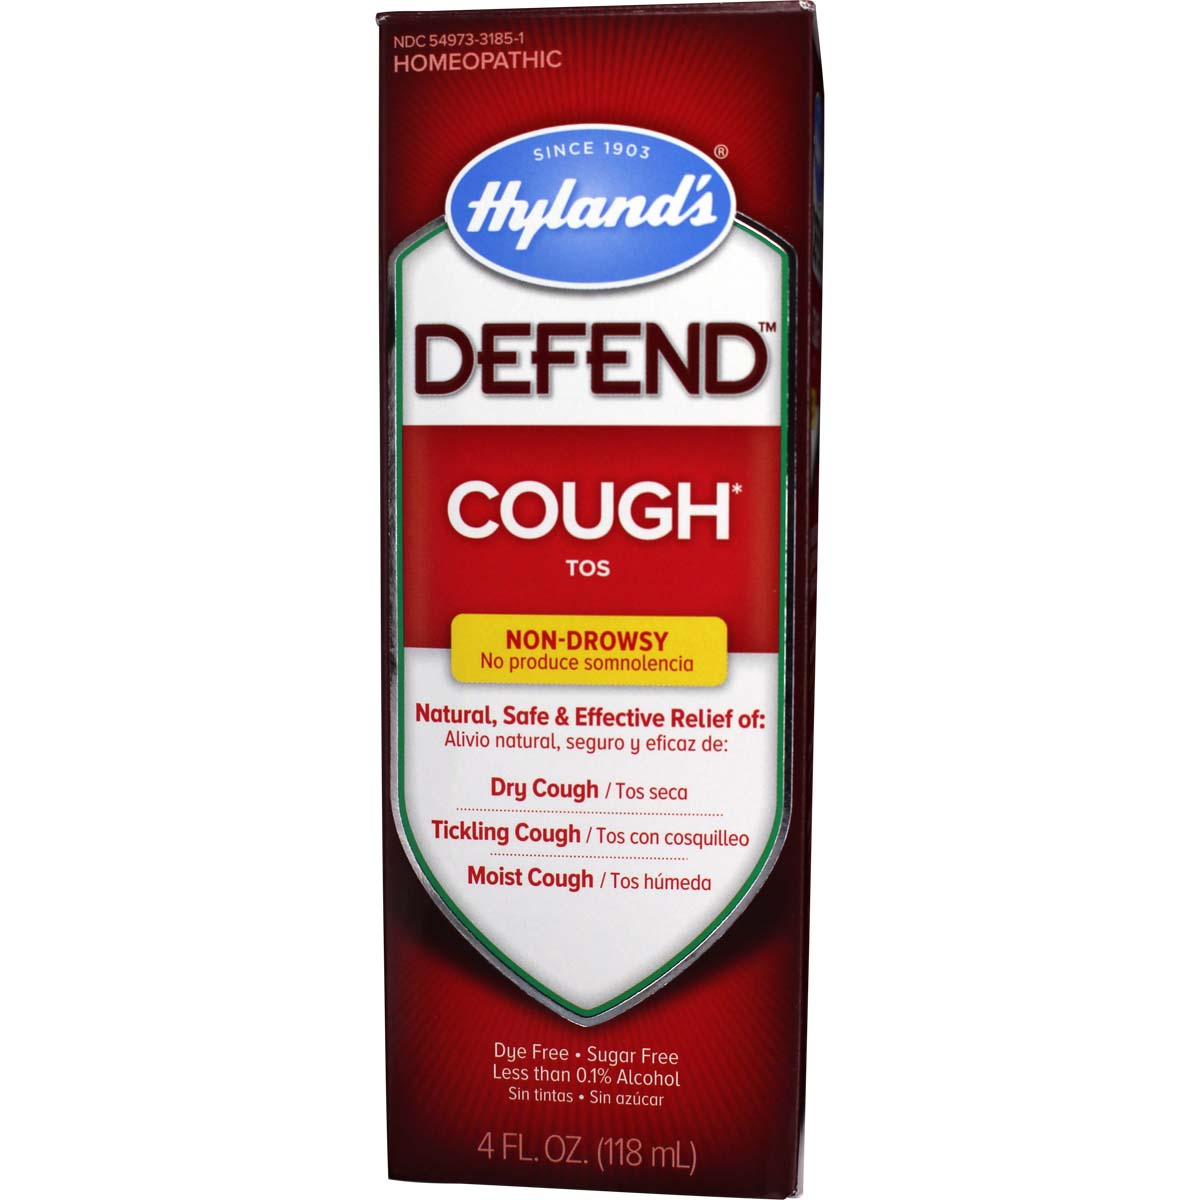 Defend Cough For Adults & Children Dry cough, Adult